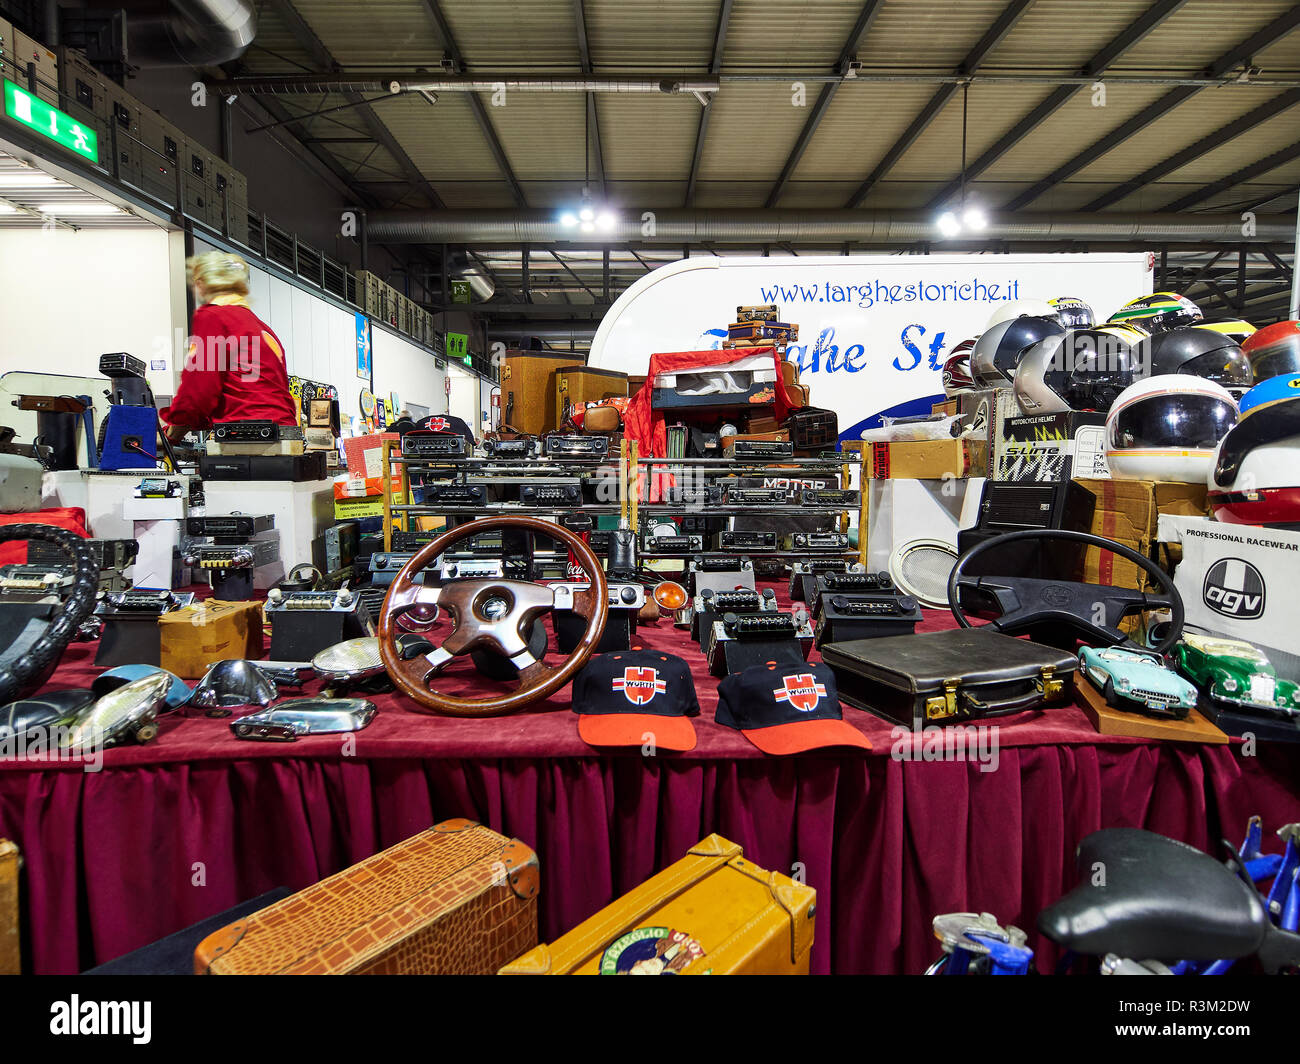 Milan, Lombardy Italy - November 23 , 2018 - Stand selling classic cars stereos at Autoclassica Milano 2018 edition at Fiera Milano Rho Credit: Armando Borges/Alamy Live News - Stock Image